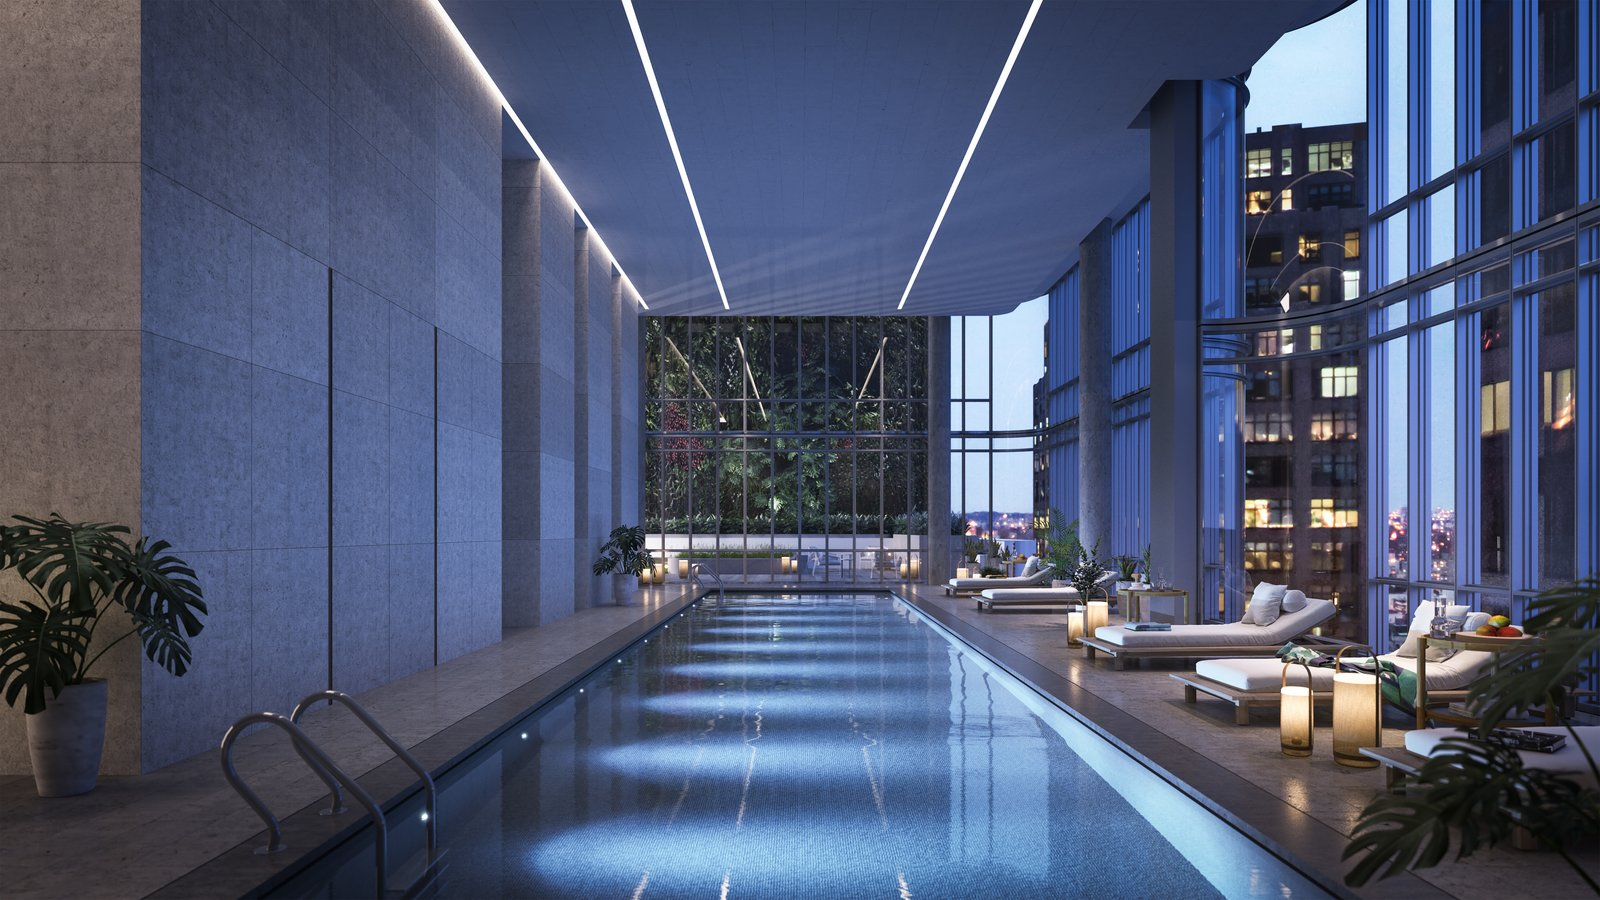 A 55-foot saltwater lap pool can be found inside the residences, along with 17,000 square feet of other amenities including a fitness center, yoga studio, media room, outdoor terrace, children's playroom, and sauna and steam room facilities.  Photo 8 of 9 in Renzo Piano Building Workshop Brings a New Residential Destination to Soho